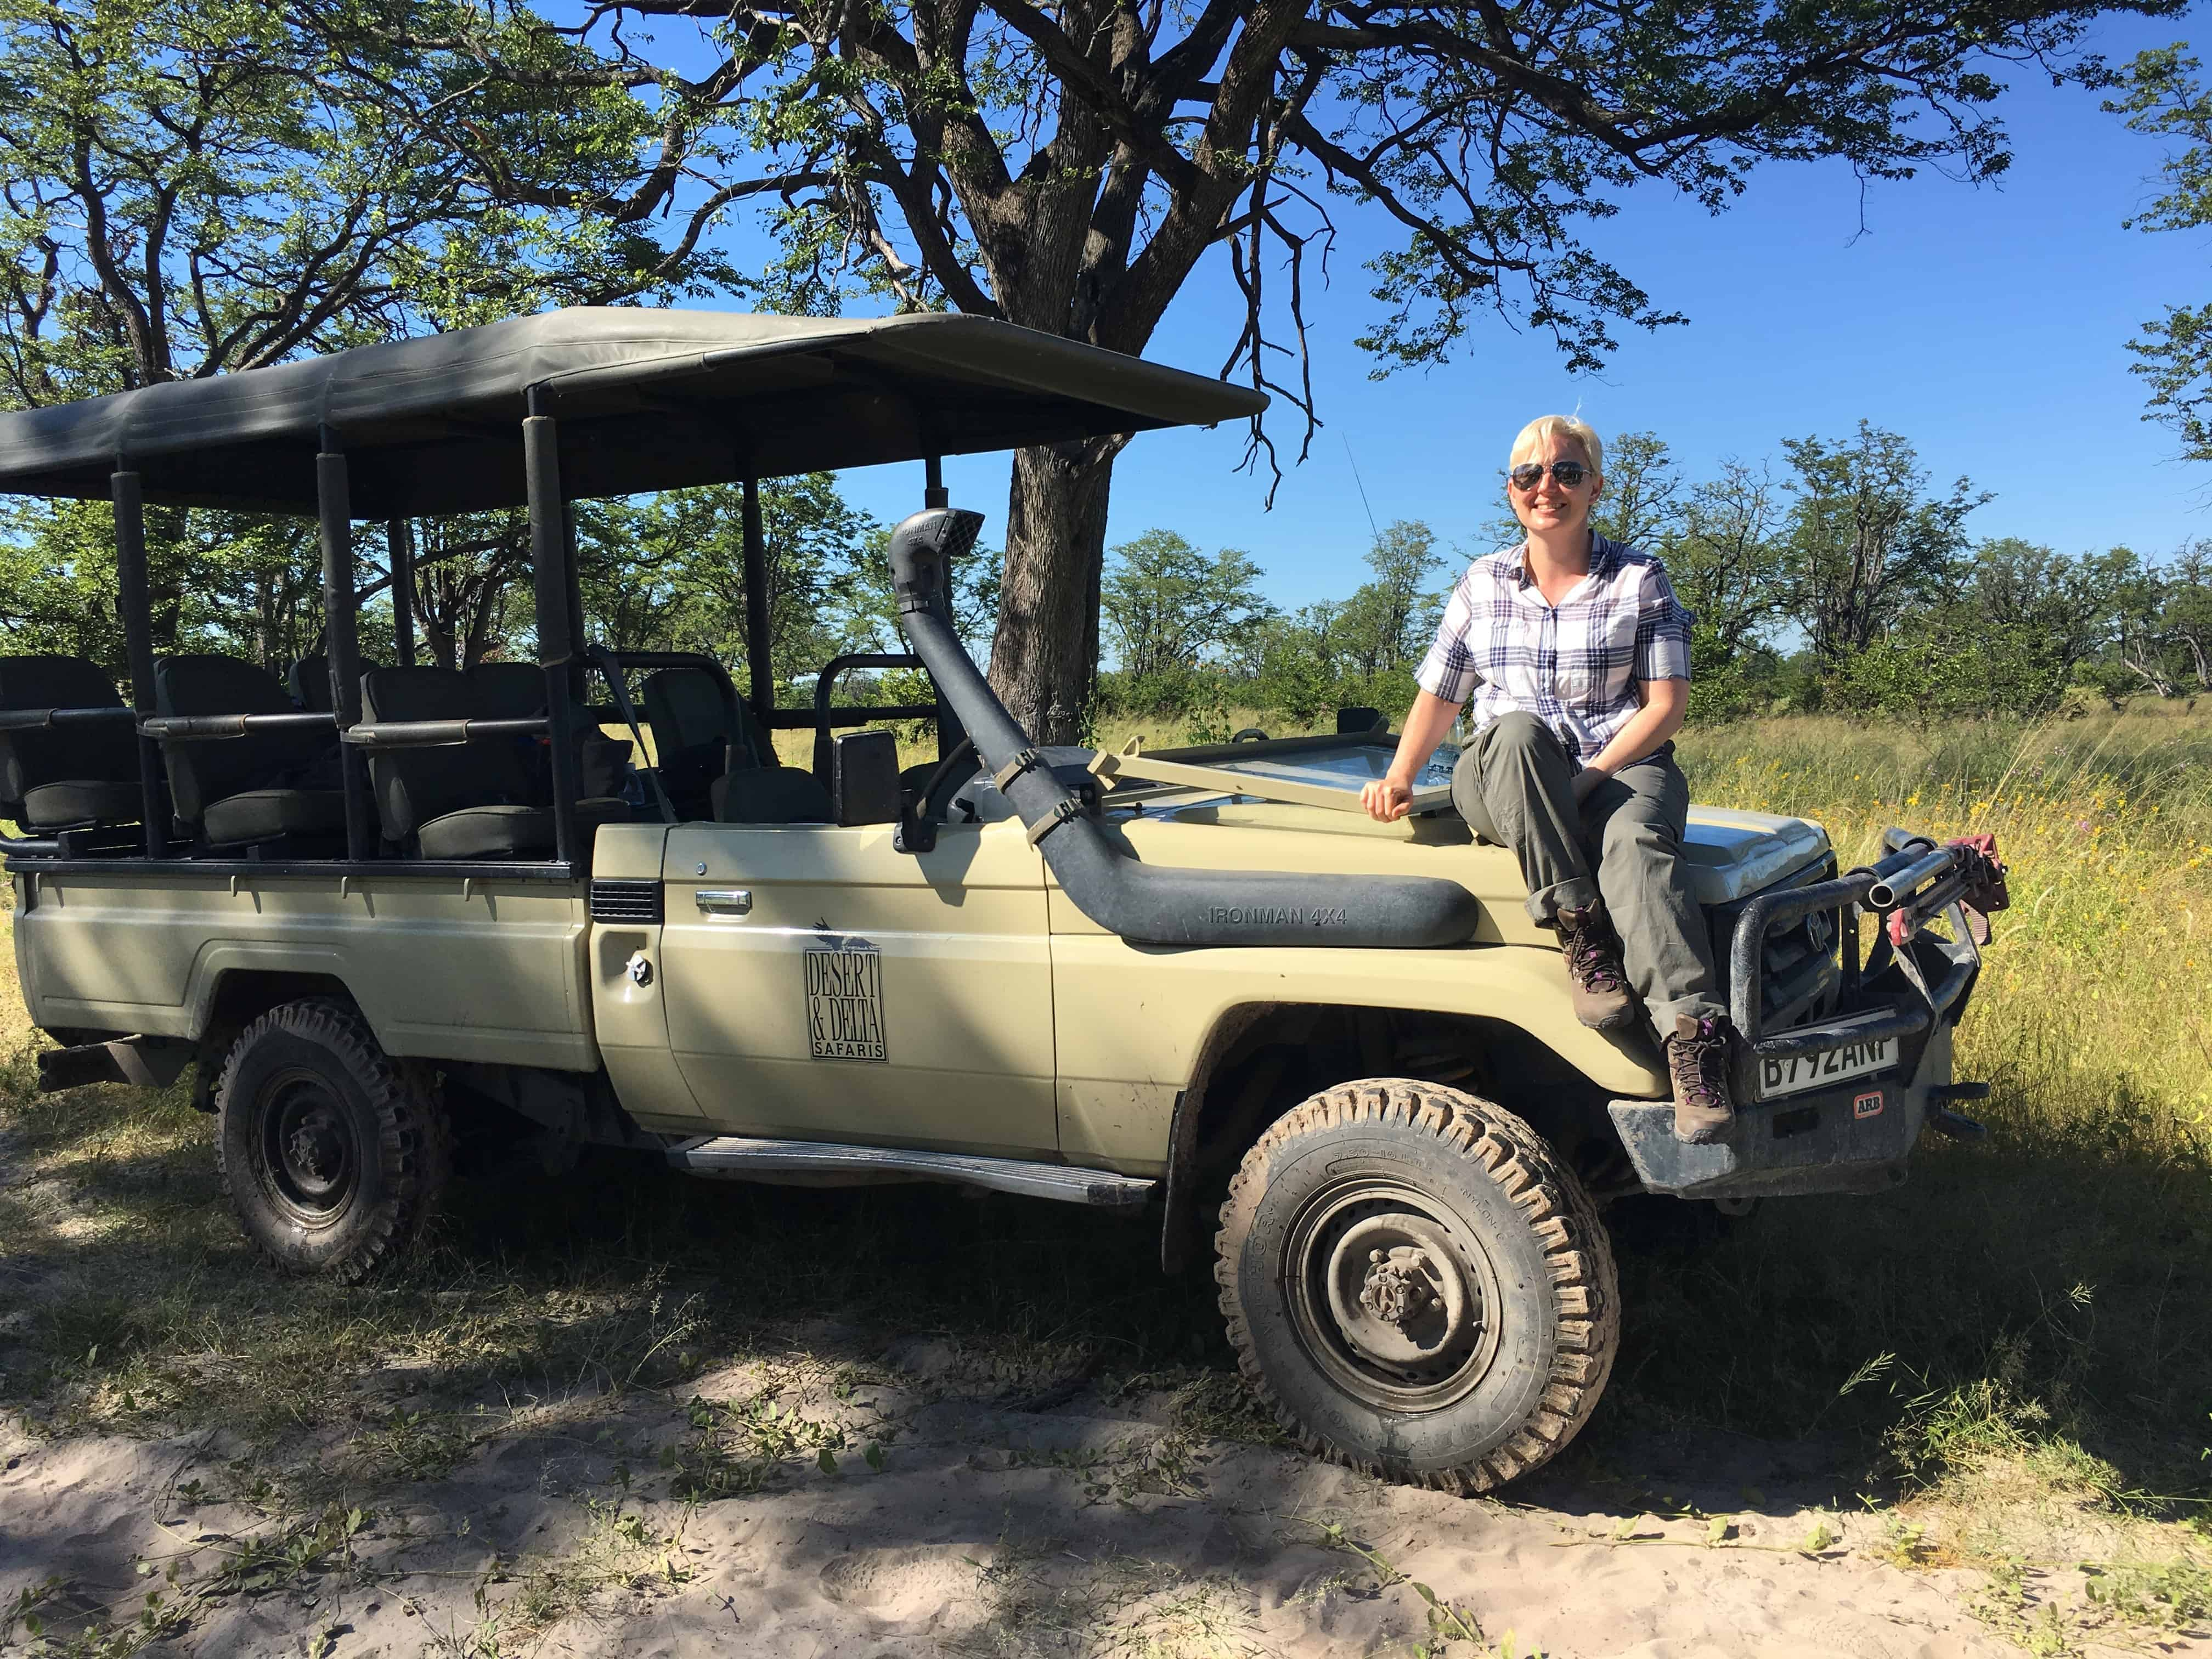 Daisy has been in the Travel industry since 2004 and has a Diploma in Travel and Tourism. She beliefs in the best service possible and putting her clients first. She has travelled to East Africa, Southern Africa and Mauritius, always trying to broaden her horizon. In her free time she spends time with her son and family and friends.